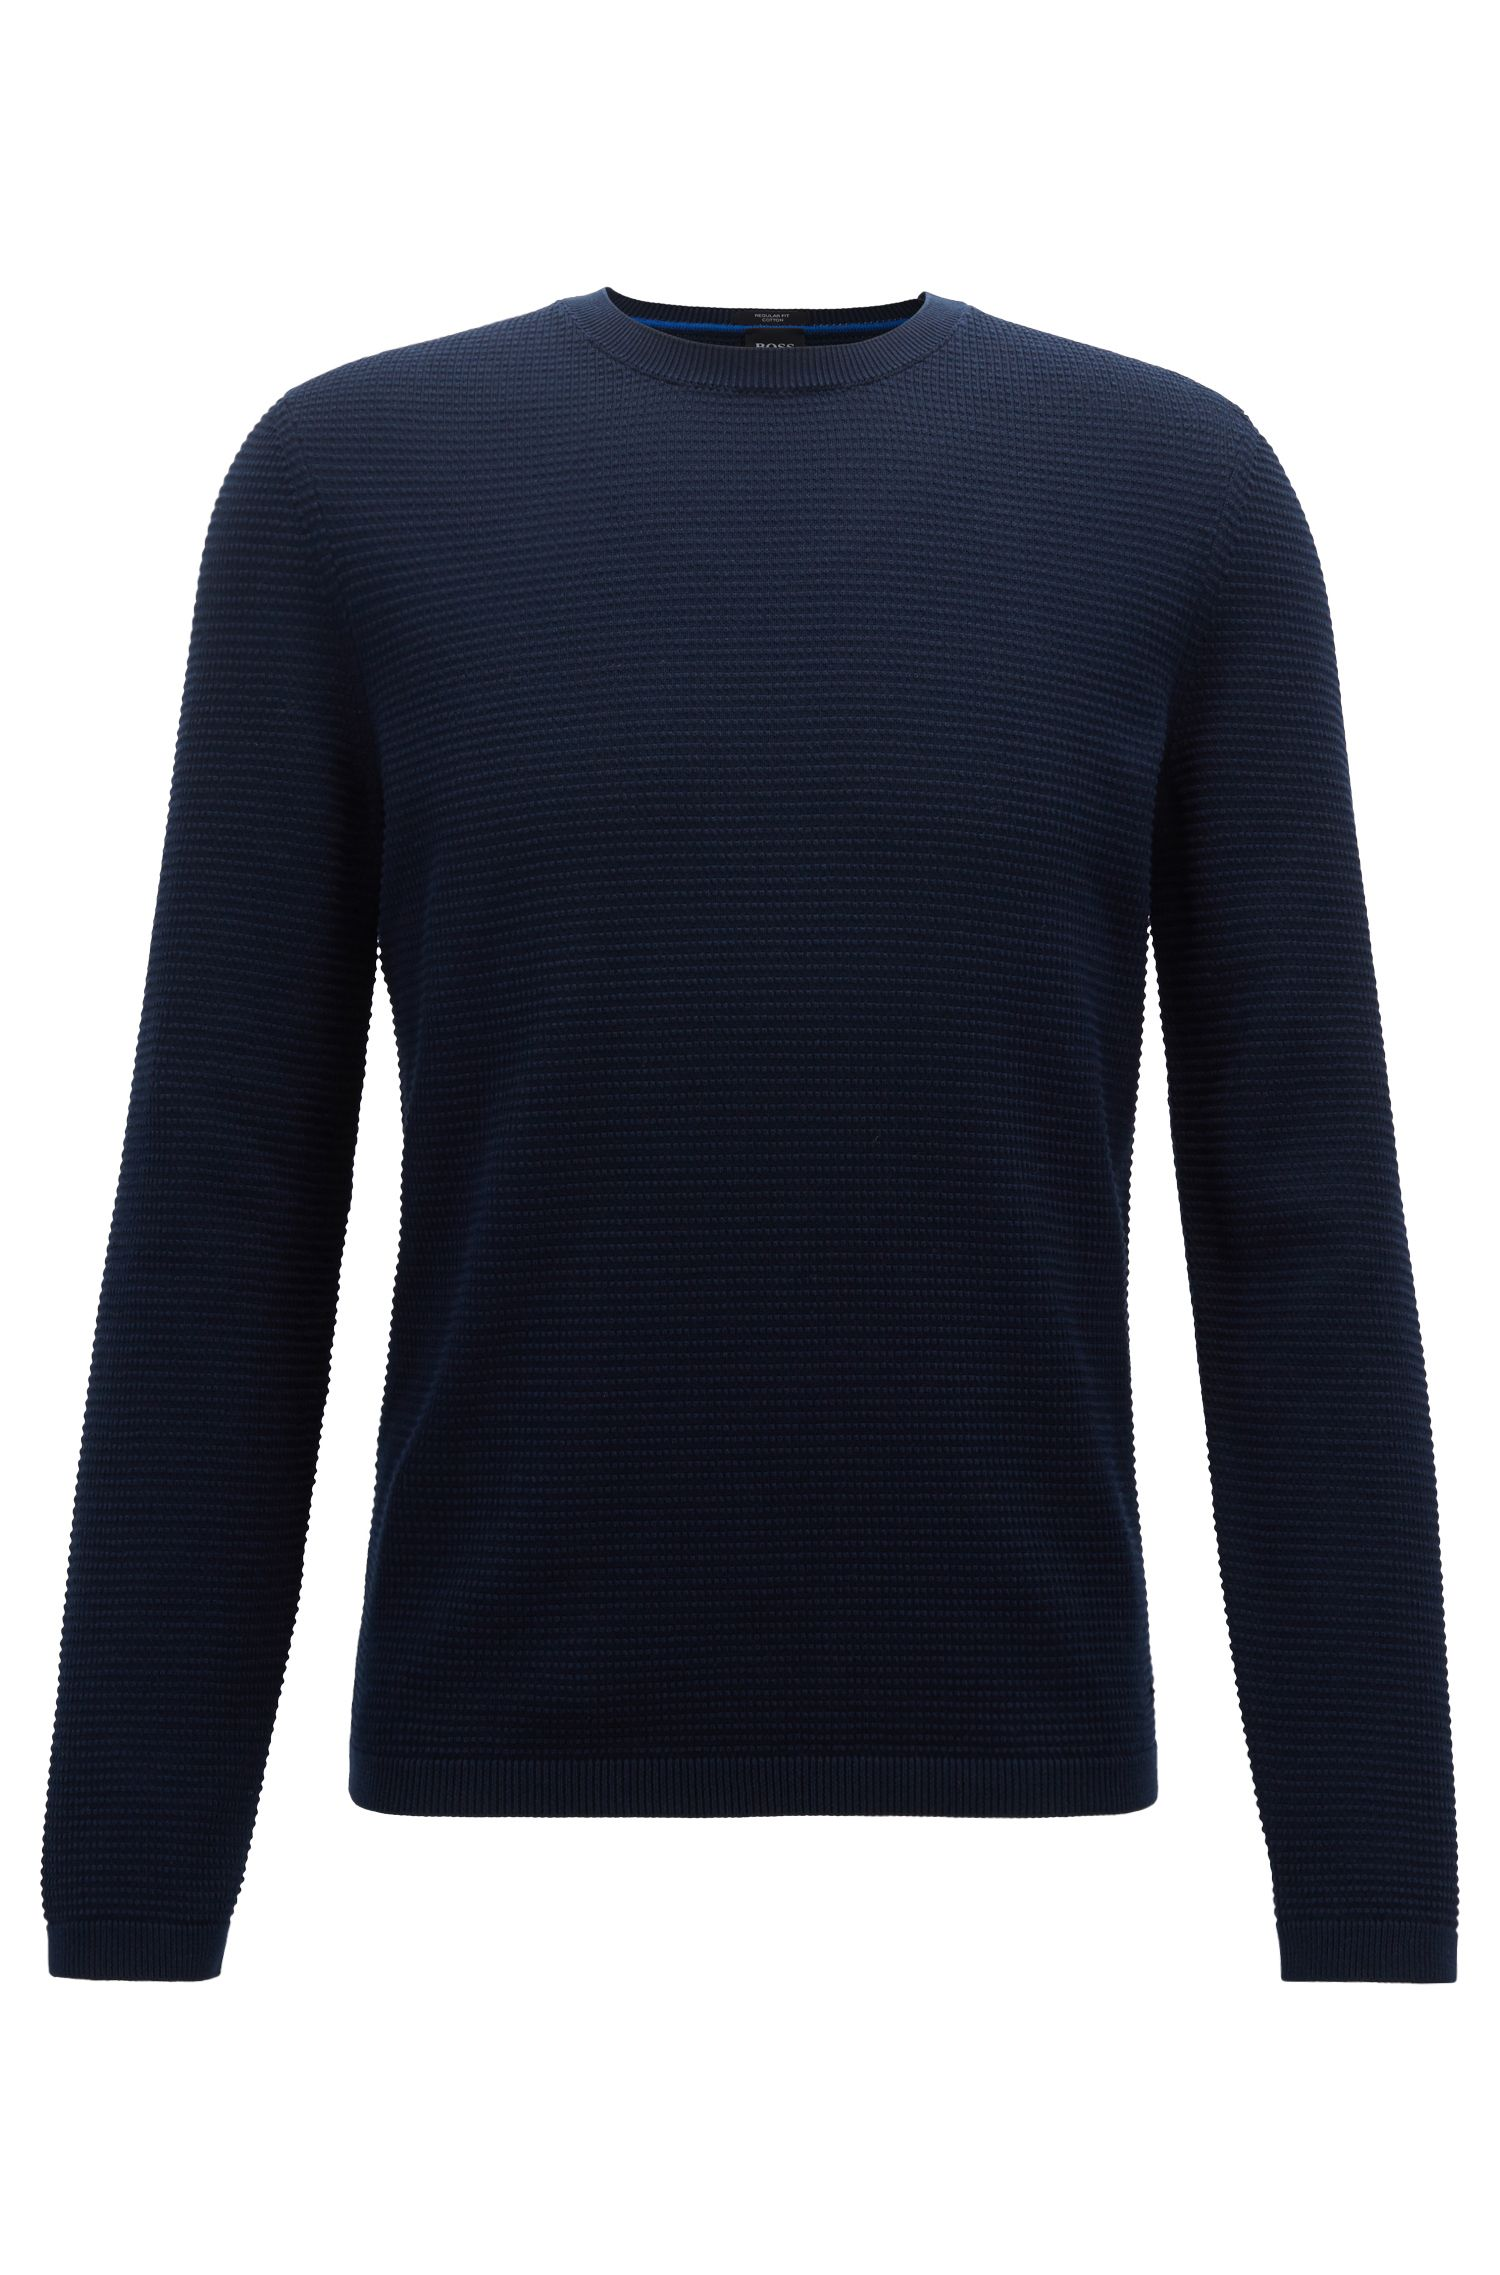 Limited-edition knitted sweater in micro-structure Egyptian cotton, Dark Blue